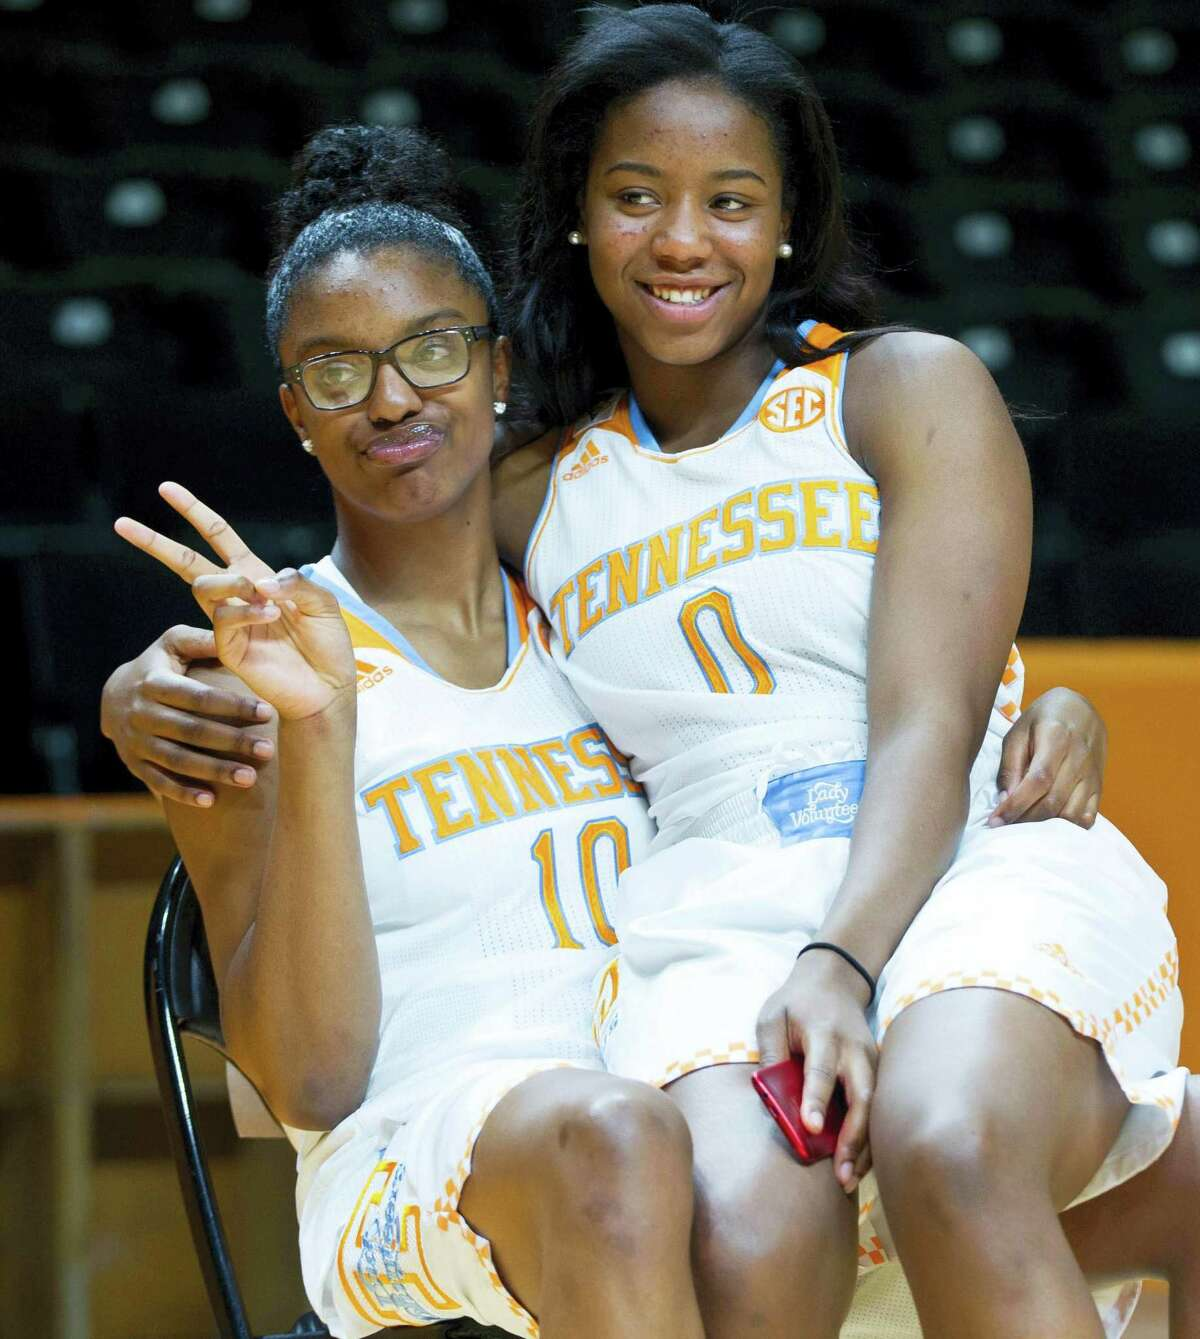 In this Oct. 29, 2014 photo, Tennessee's Diamond DeShields, left, and Jordan Reynolds pose during NCAA college basketball media dayin Knoxville, Tenn. After sitting out this past season as a transfer from North Carolina, DeShields is about to make up for lost time while adapting to her new teammates.